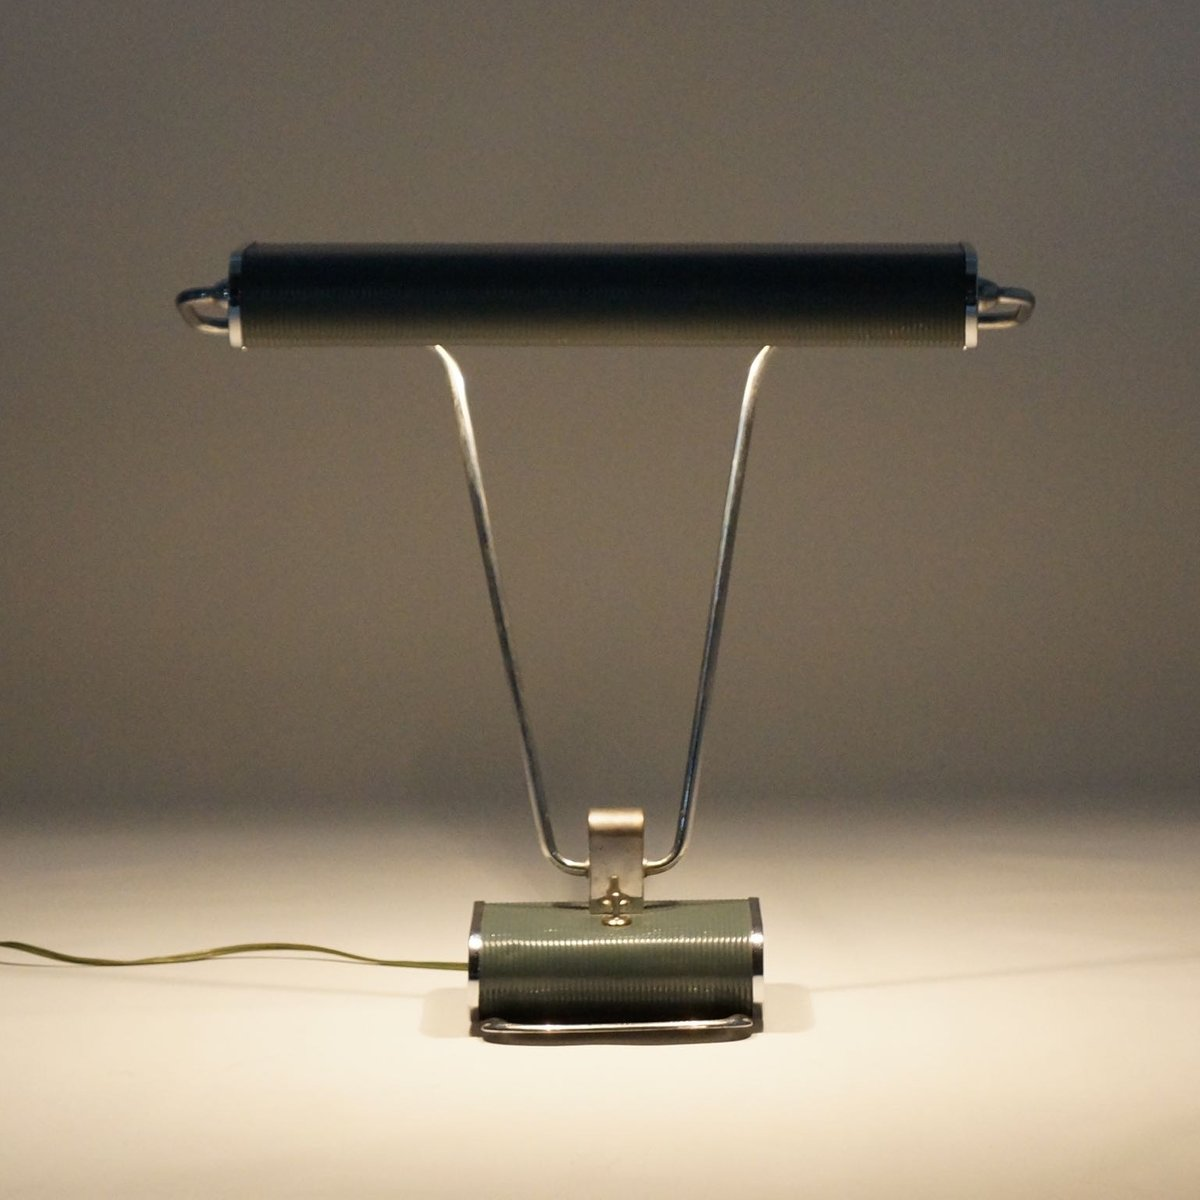 Art Deco Desk Lamp by Eileen Gray for Jumo, 1930s for sale at Pamono